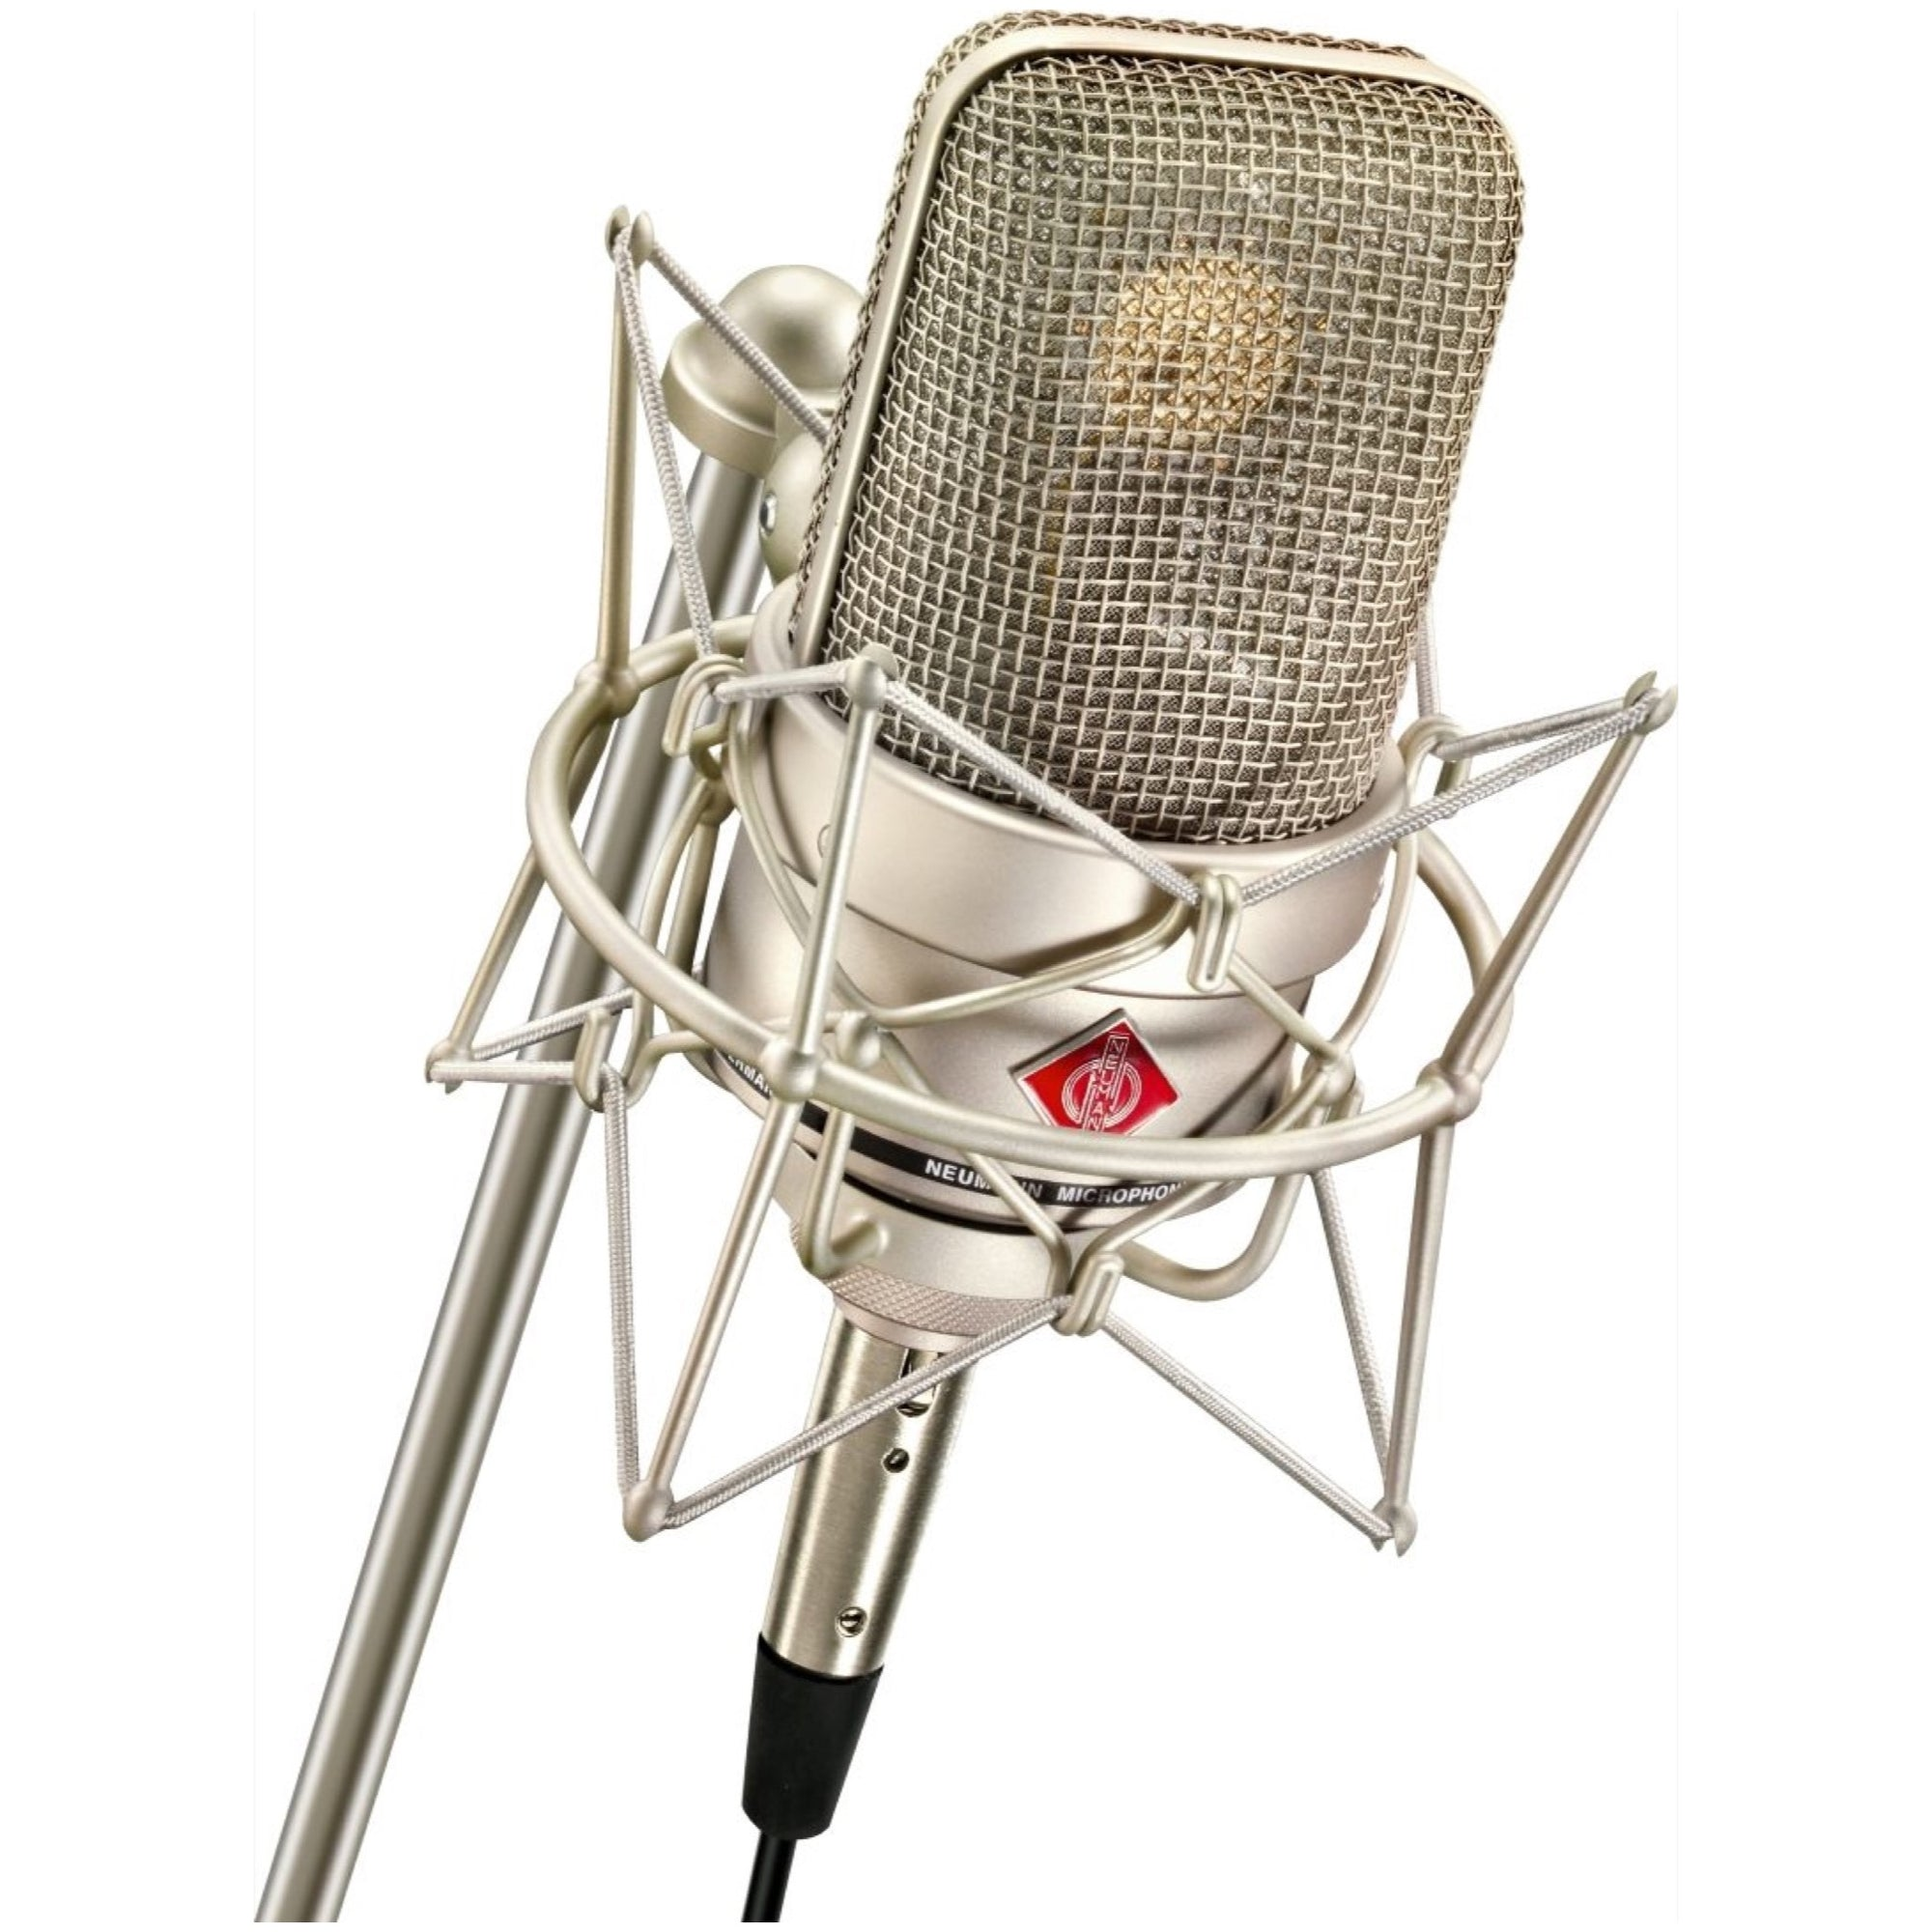 Neumann TLM 49 Cardioid Condenser Microphone, with EA3 Shockmount